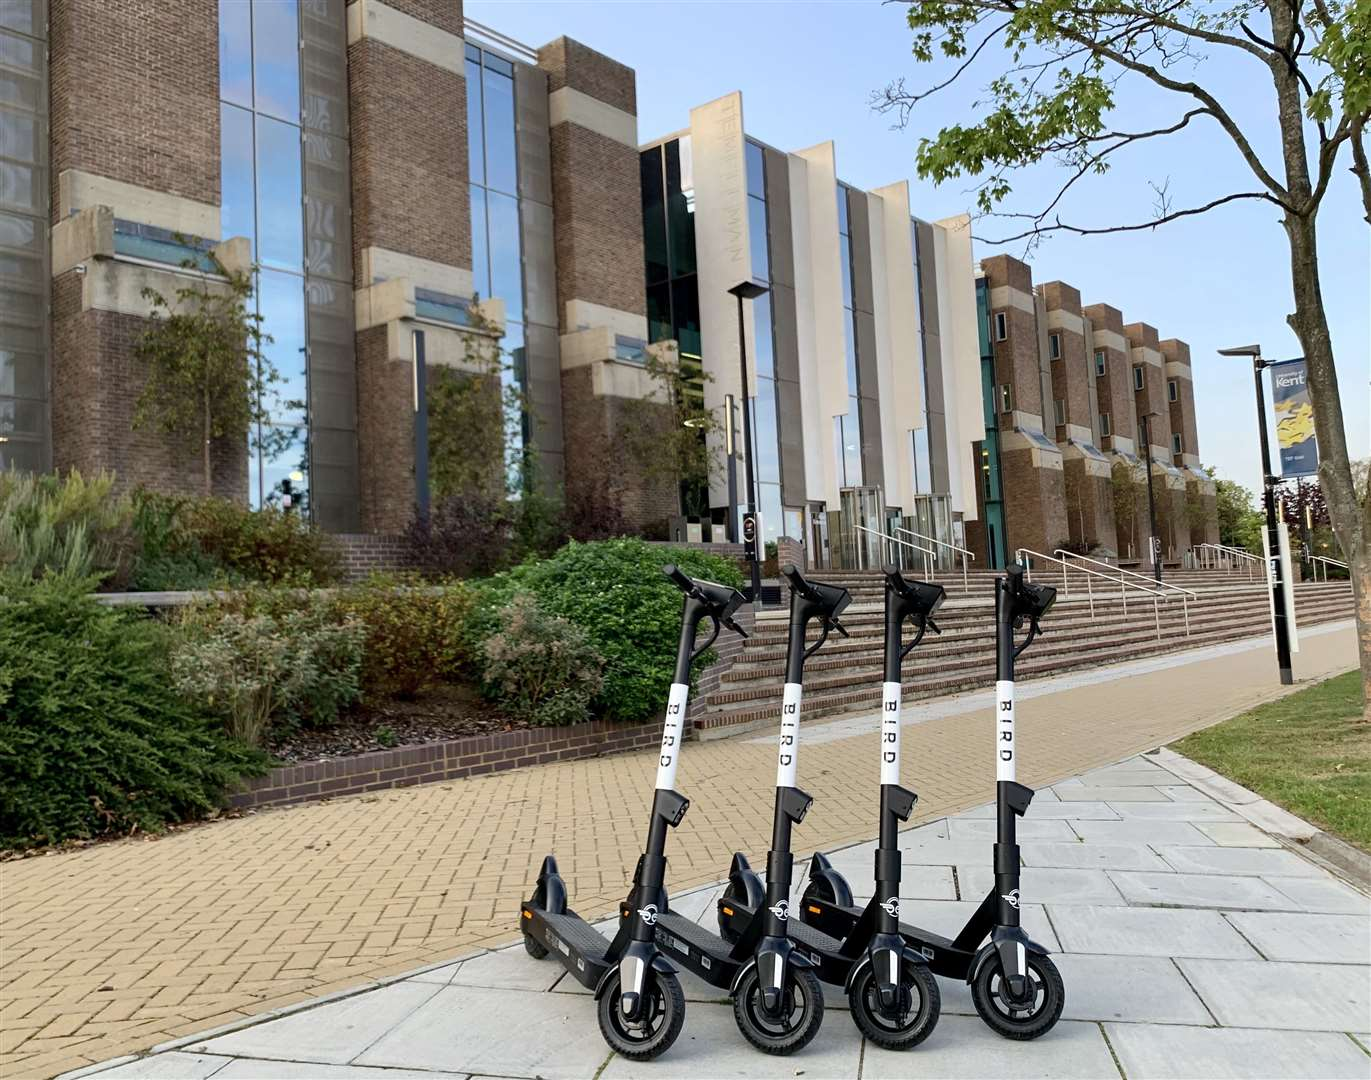 The Bird electric scooters at the University of Kent. Picture: Bird